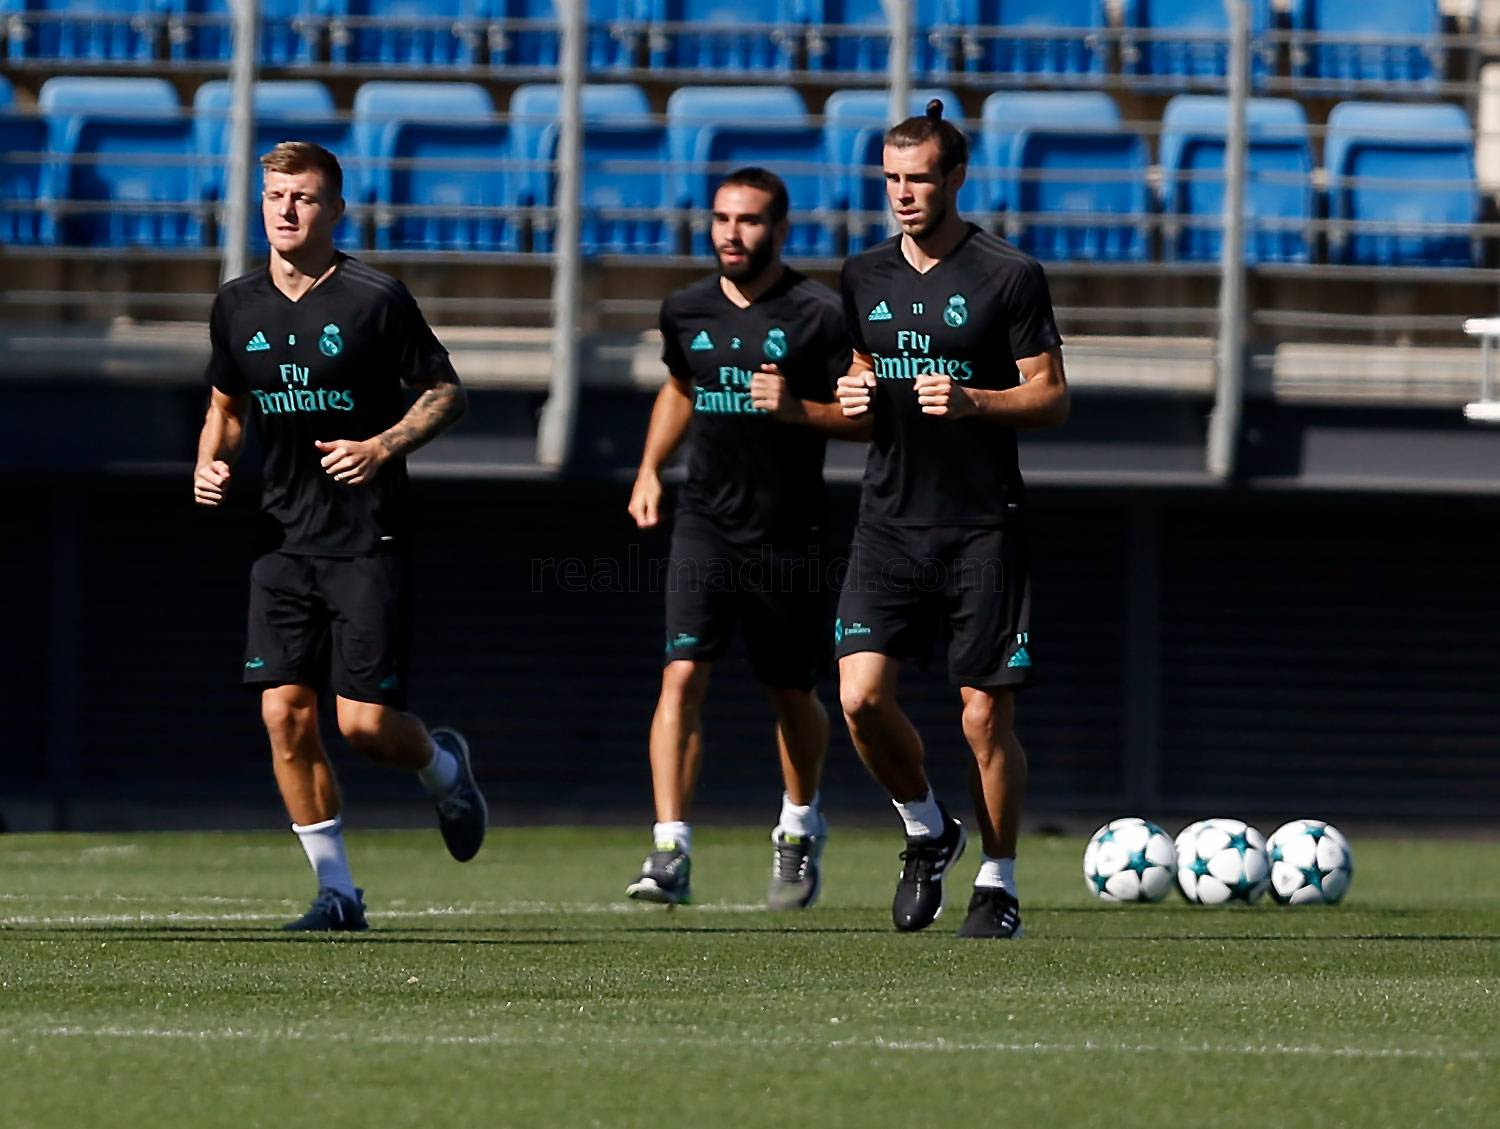 Real Madrid - Entrenamiento del Real Madrid - 10-09-2017